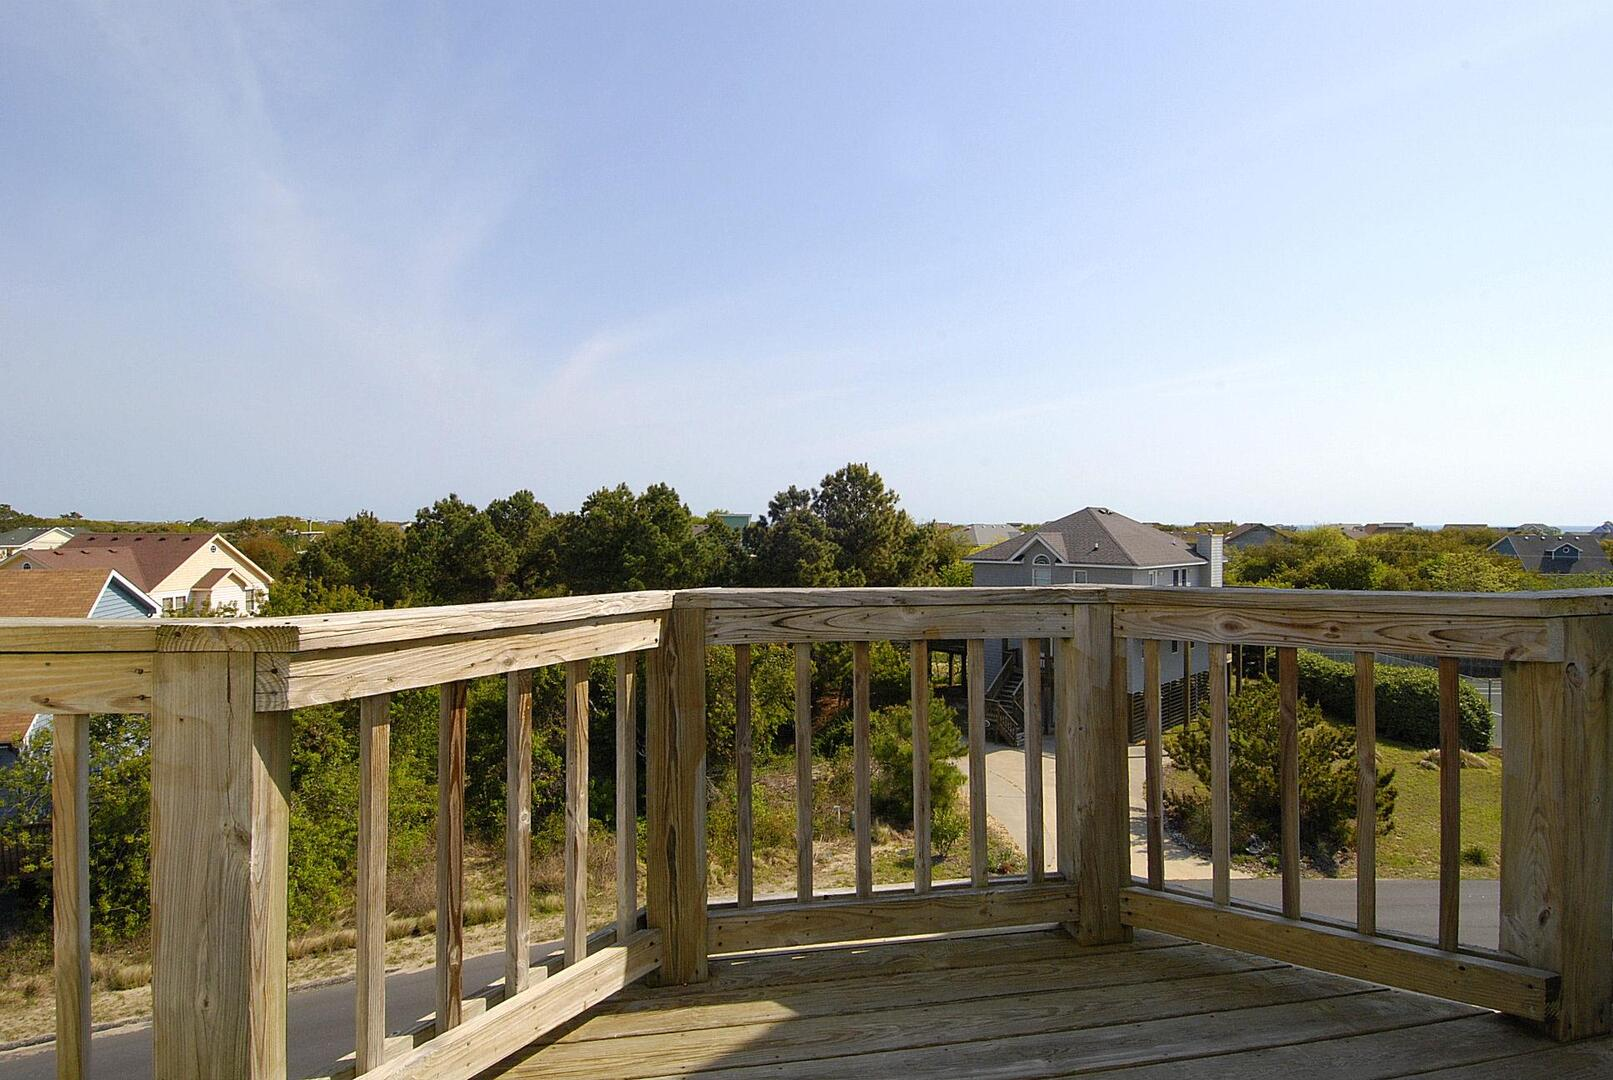 Middle/Entry Level,Deck,